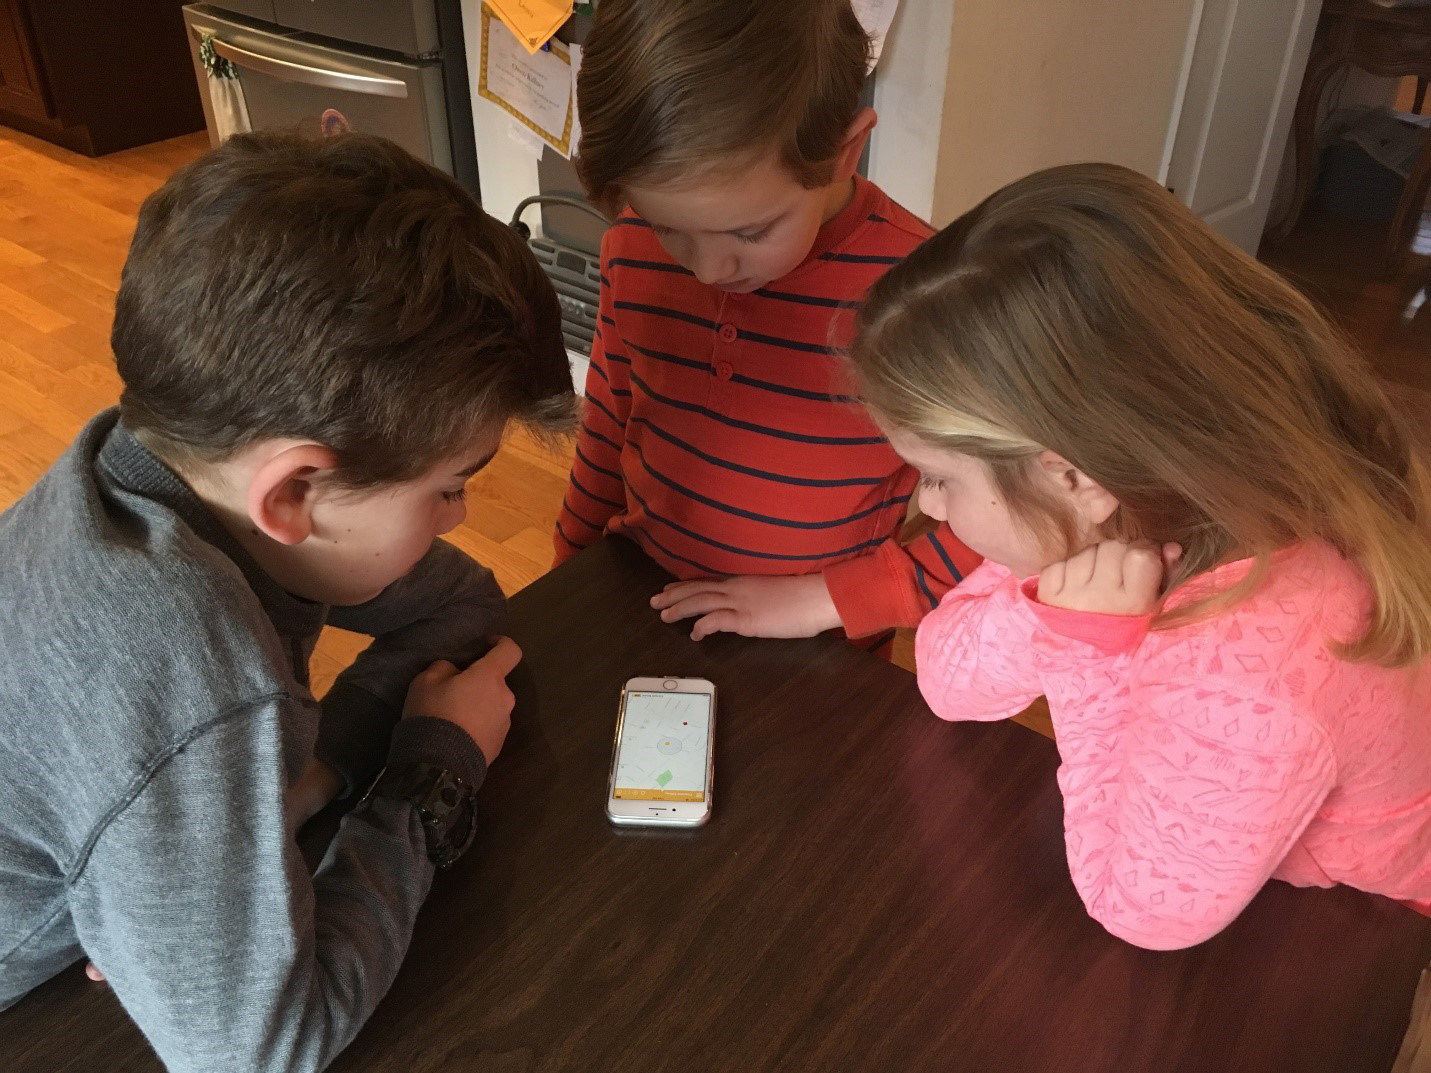 A Virginia family uses the wildly popular Here Comes The Bus app to track their school bus arrival time. Synovia Solutions launched the school bus tracking app in 2015 and it has quickly grown to serve nearly 300 school districts across North America.